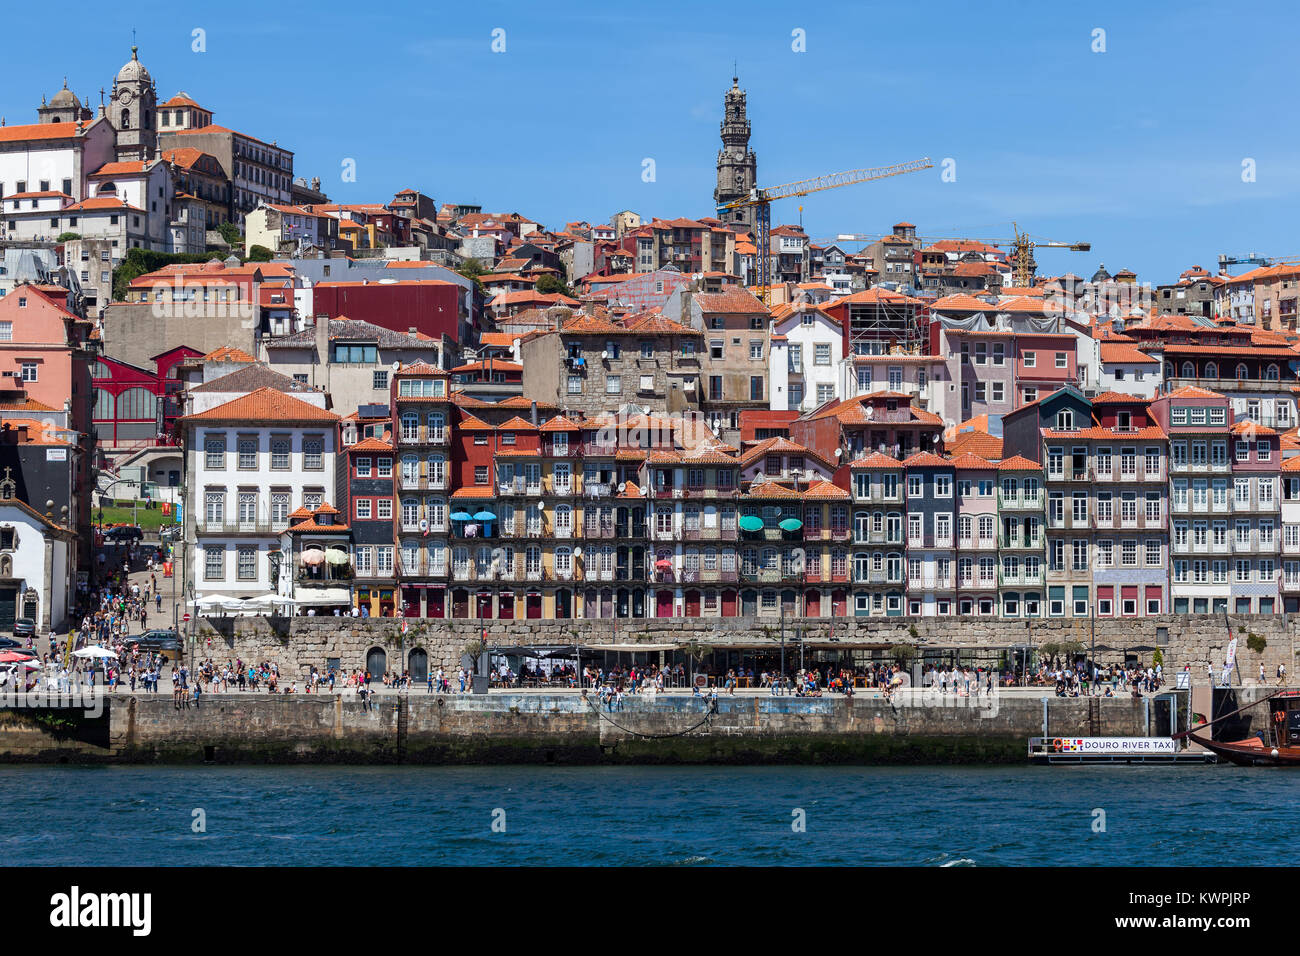 Porto, Portugal, August 16, 2017: View of the Porto's old town from across the Douro River - Stock Image